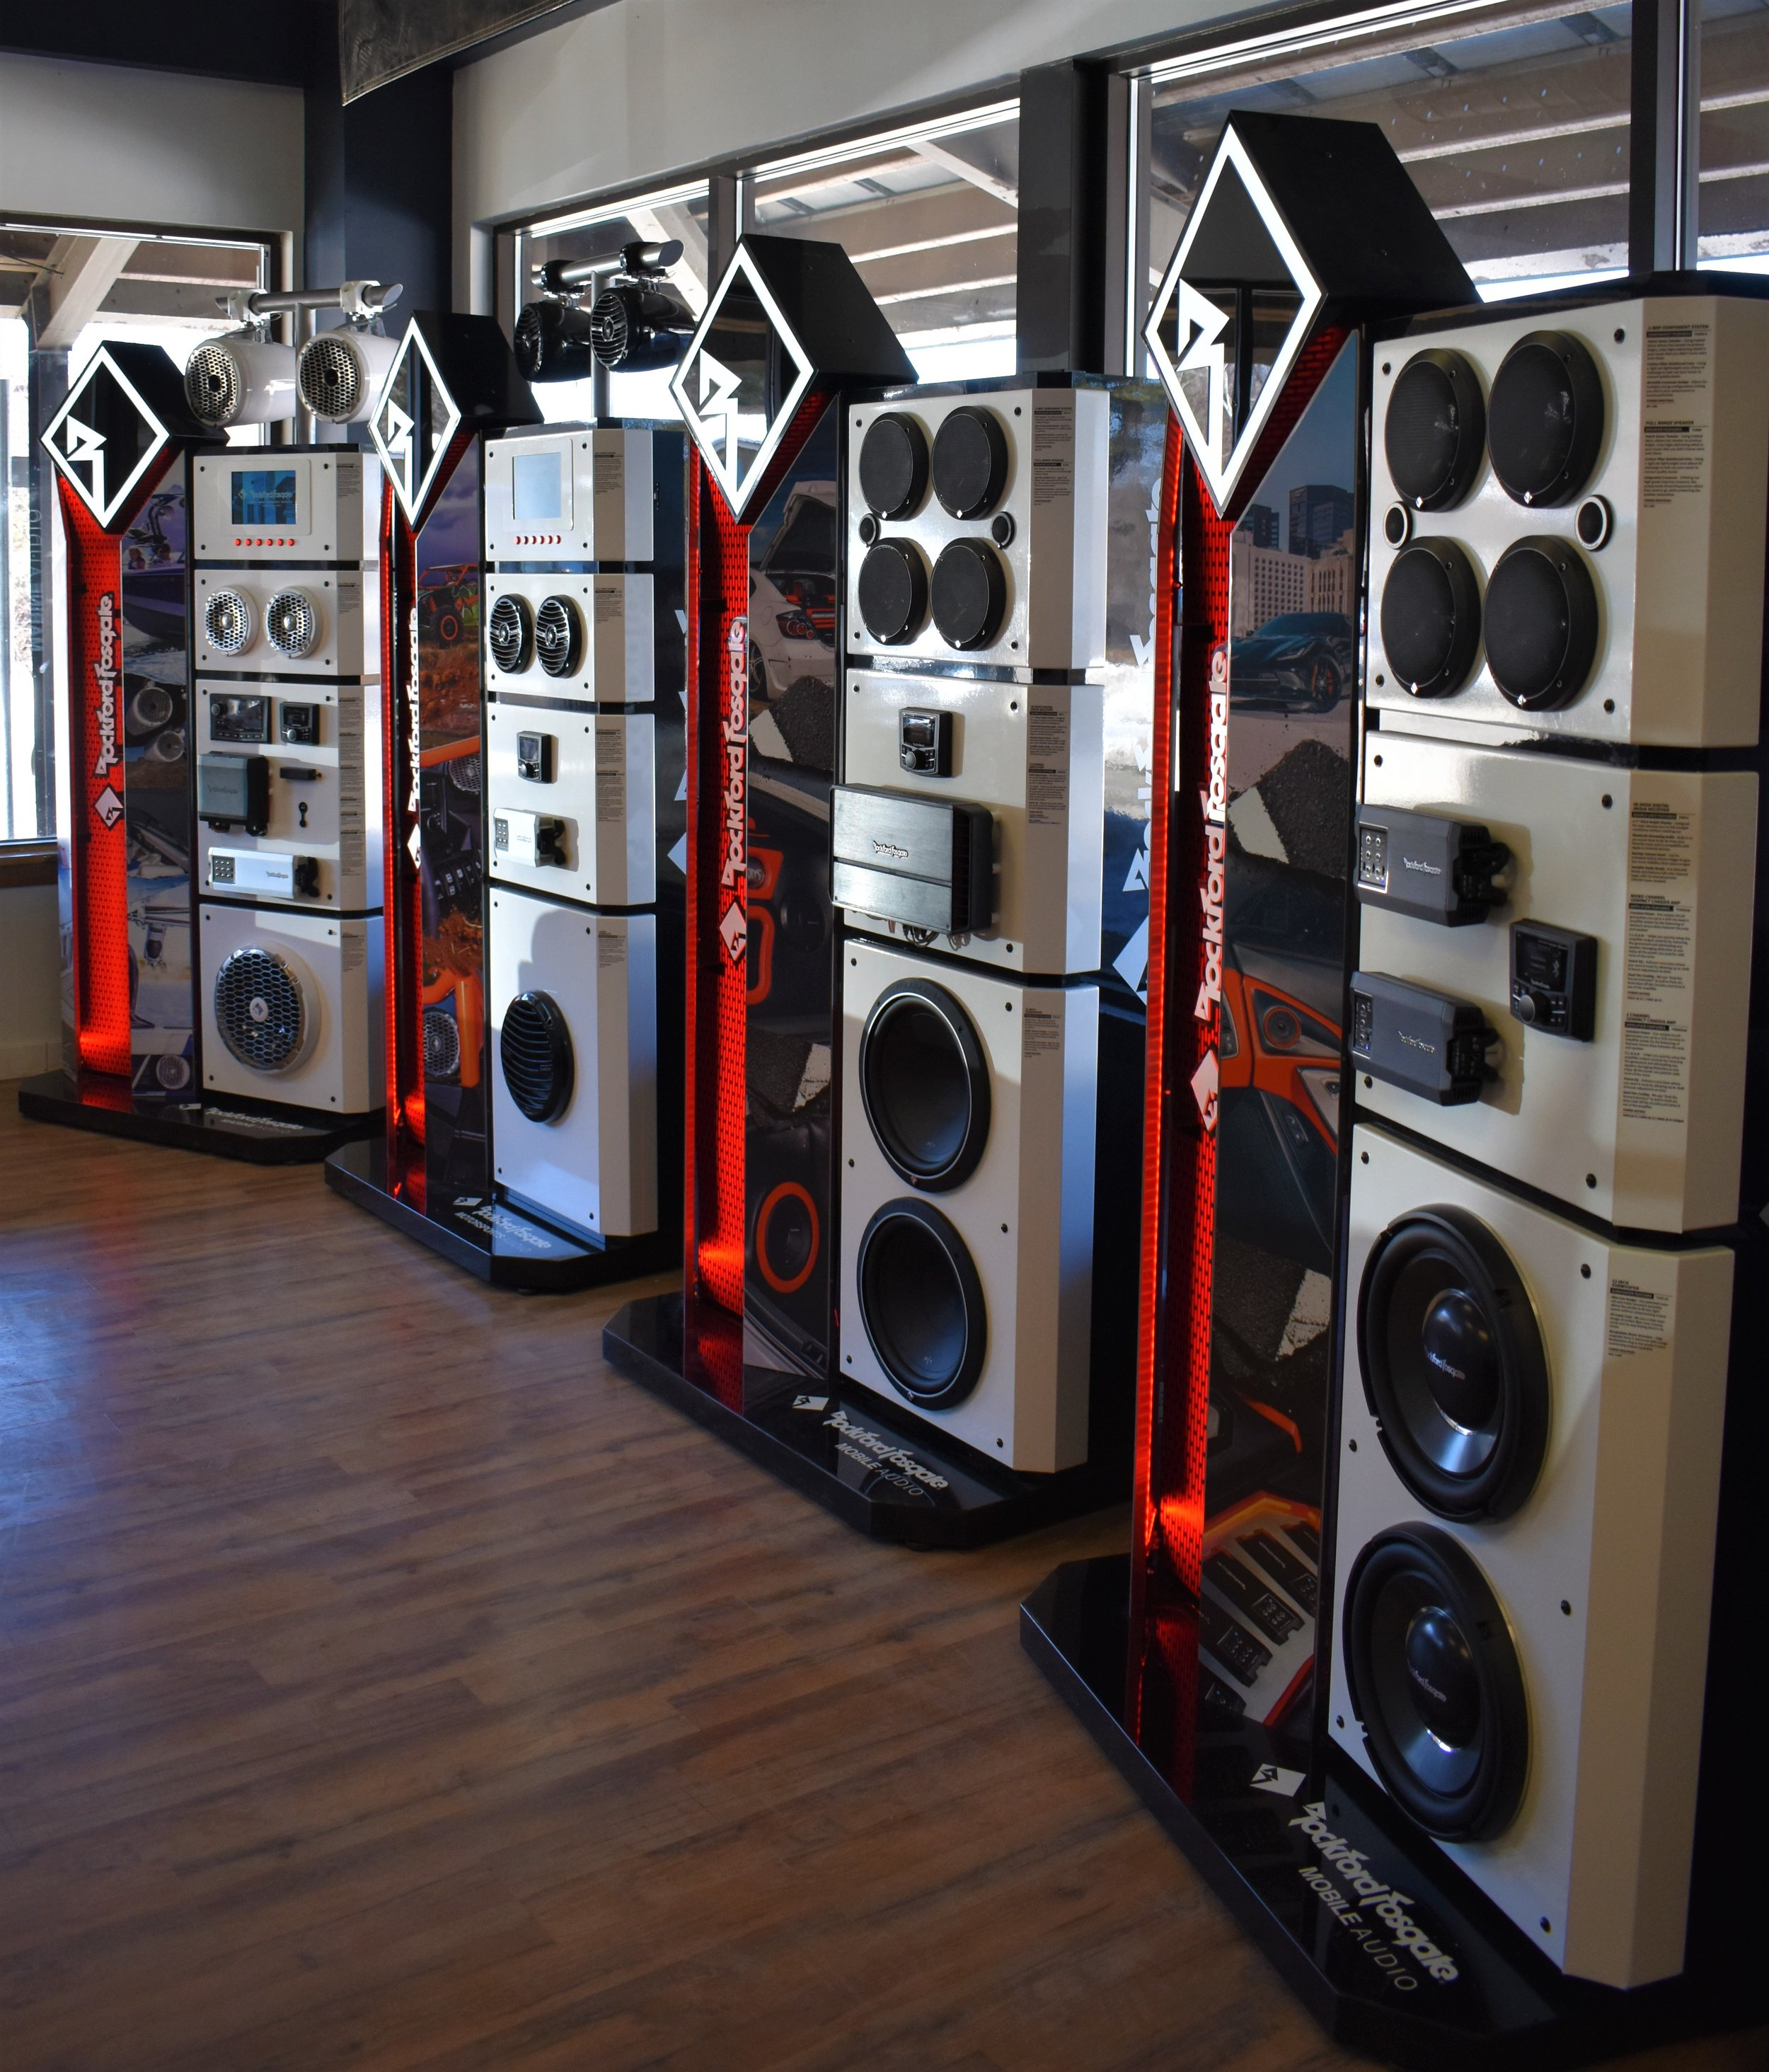 Rockford Fosgate displays have our showroom rocking! - Our Rockford Fosgate displays are switched on and waiting for you to turn it up. Come by and get turned on by the newest equipment for all your audio needs!